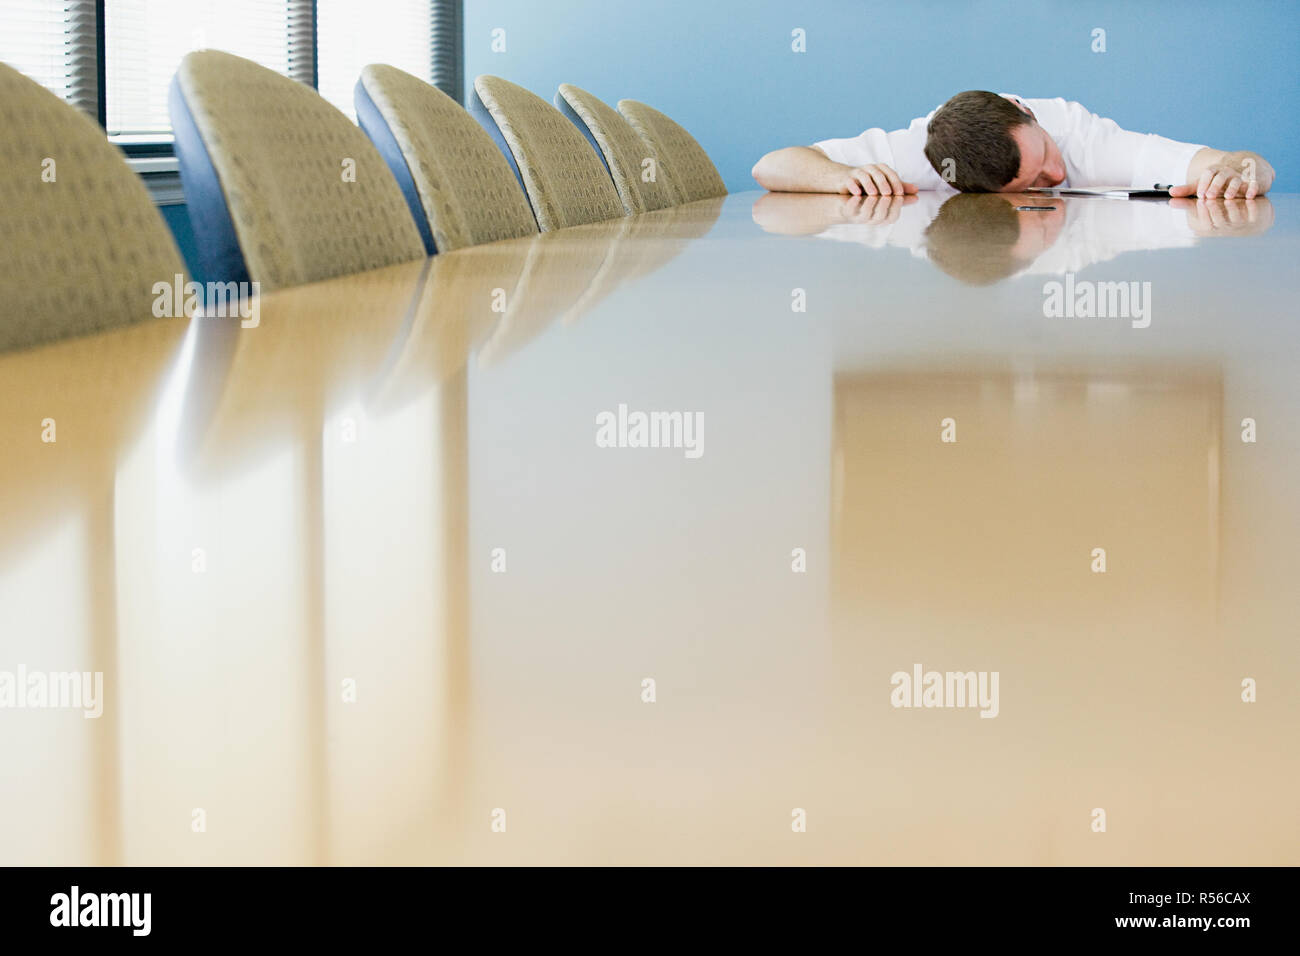 Man sleeping on conference table - Stock Image